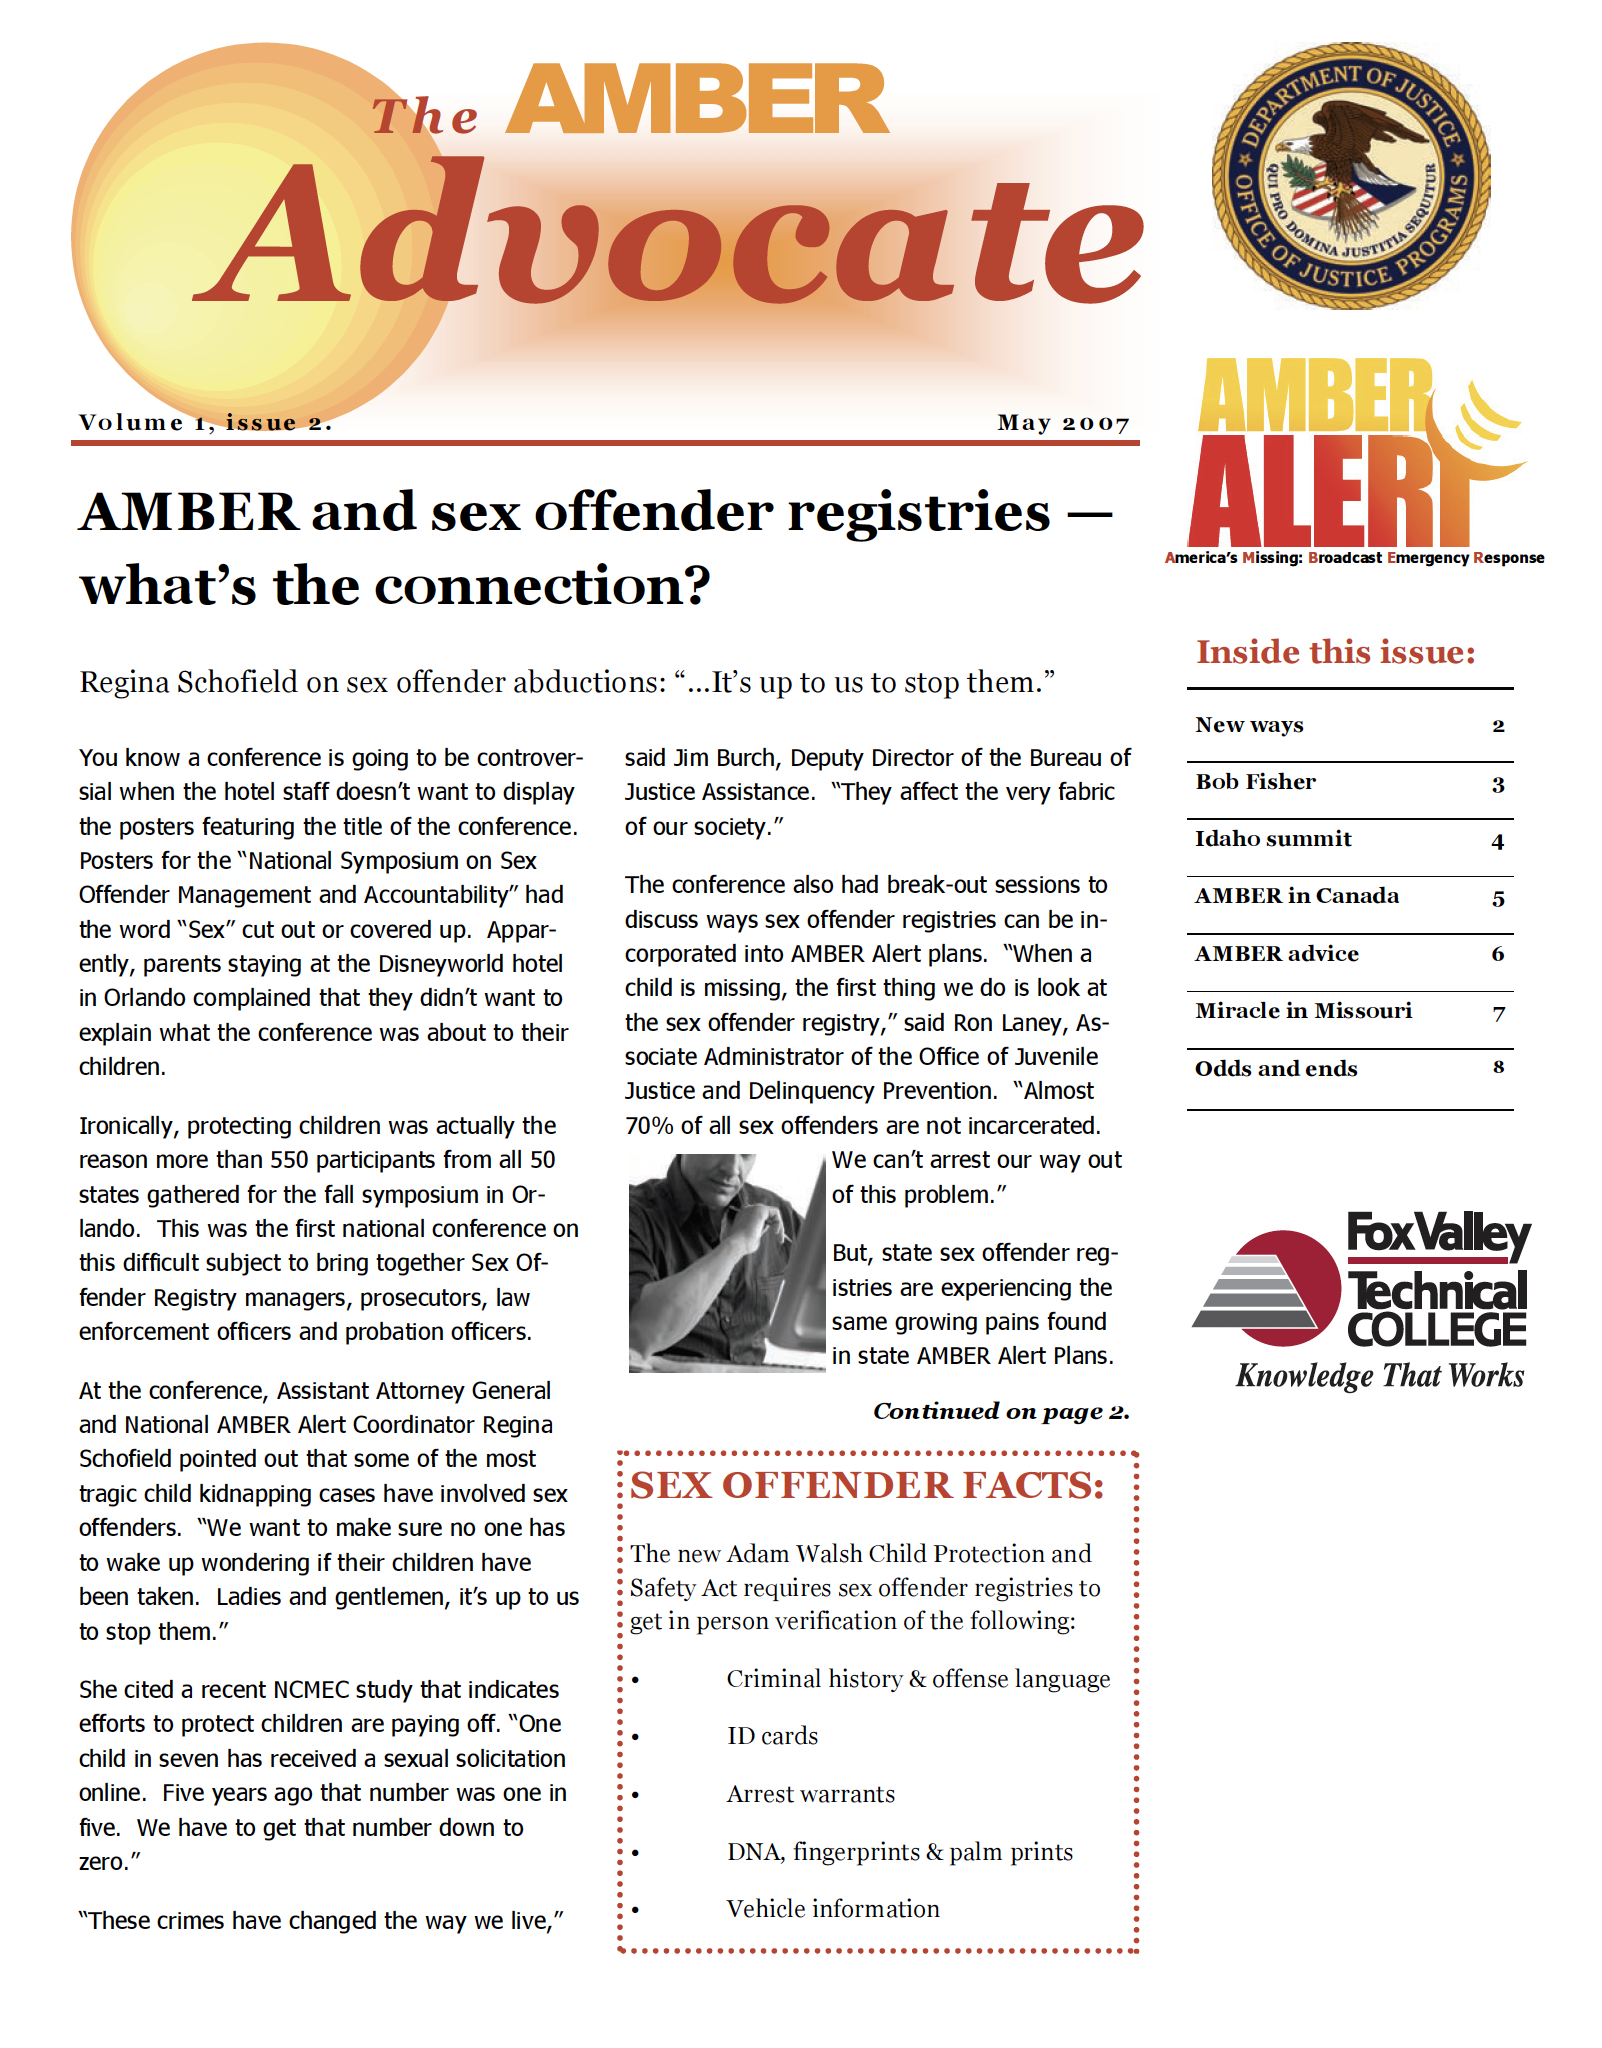 AMBER Advocate 2 cover